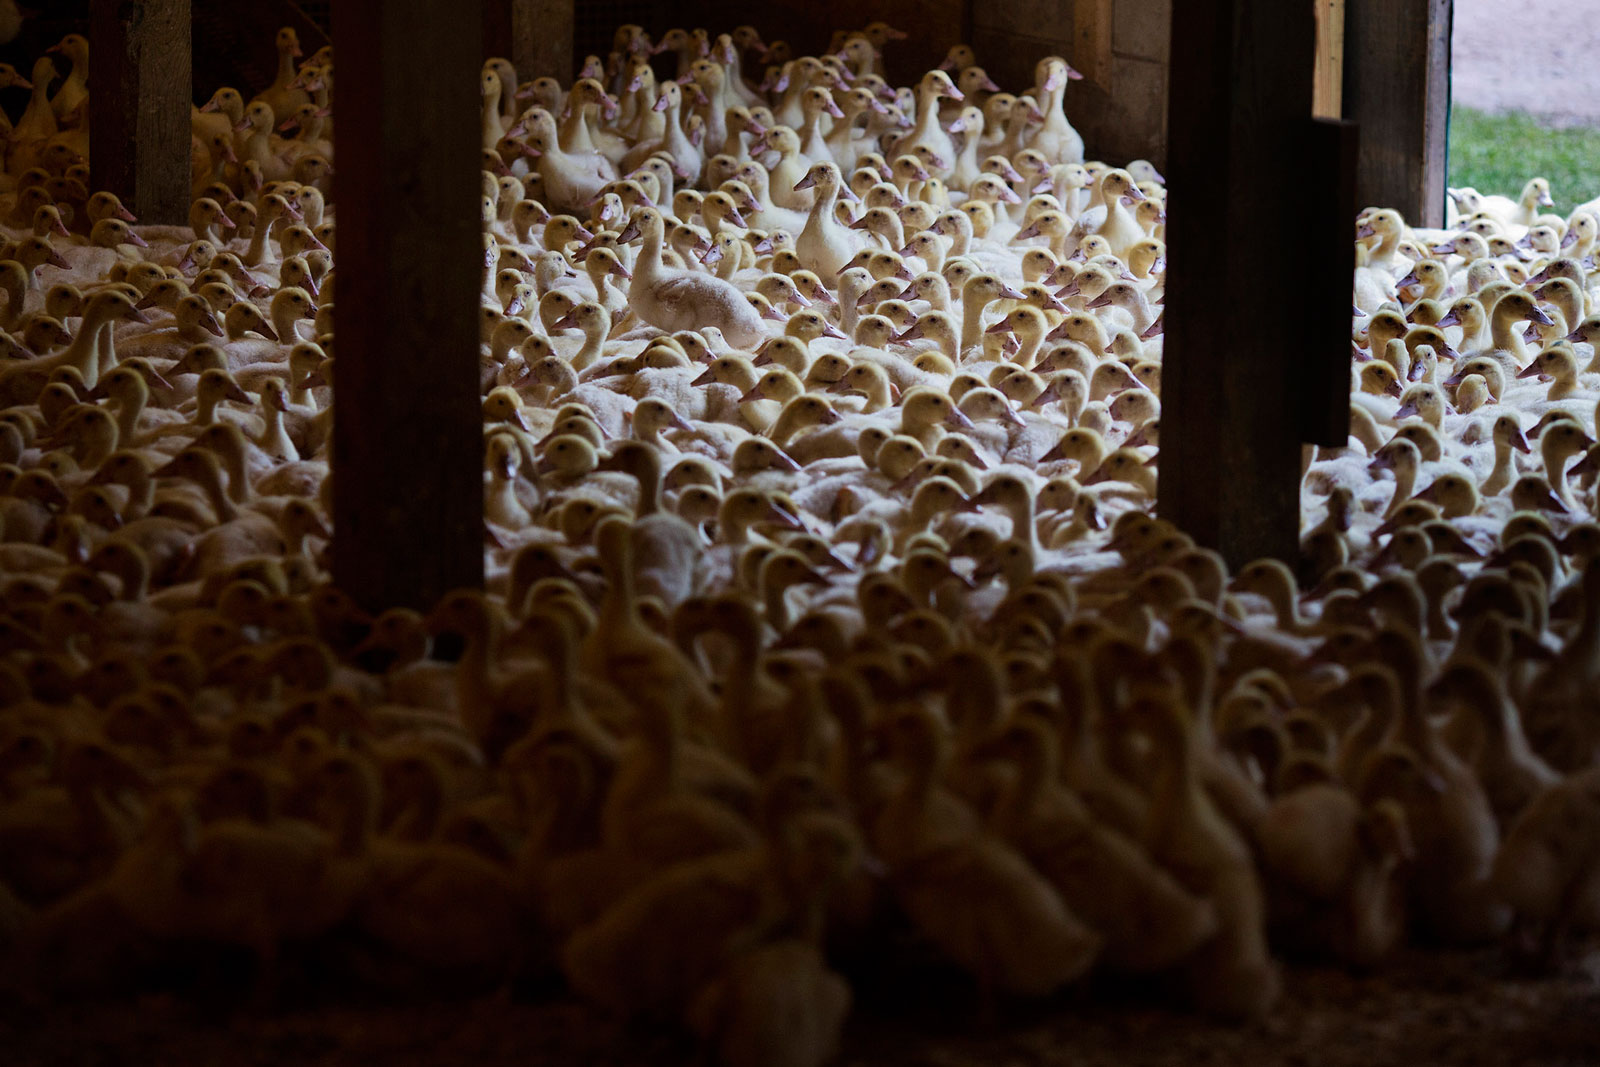 Young Rohan ducks gather in a barn where they are bred for the D'Artagnan specialty meat company in Cochecton, N.Y.